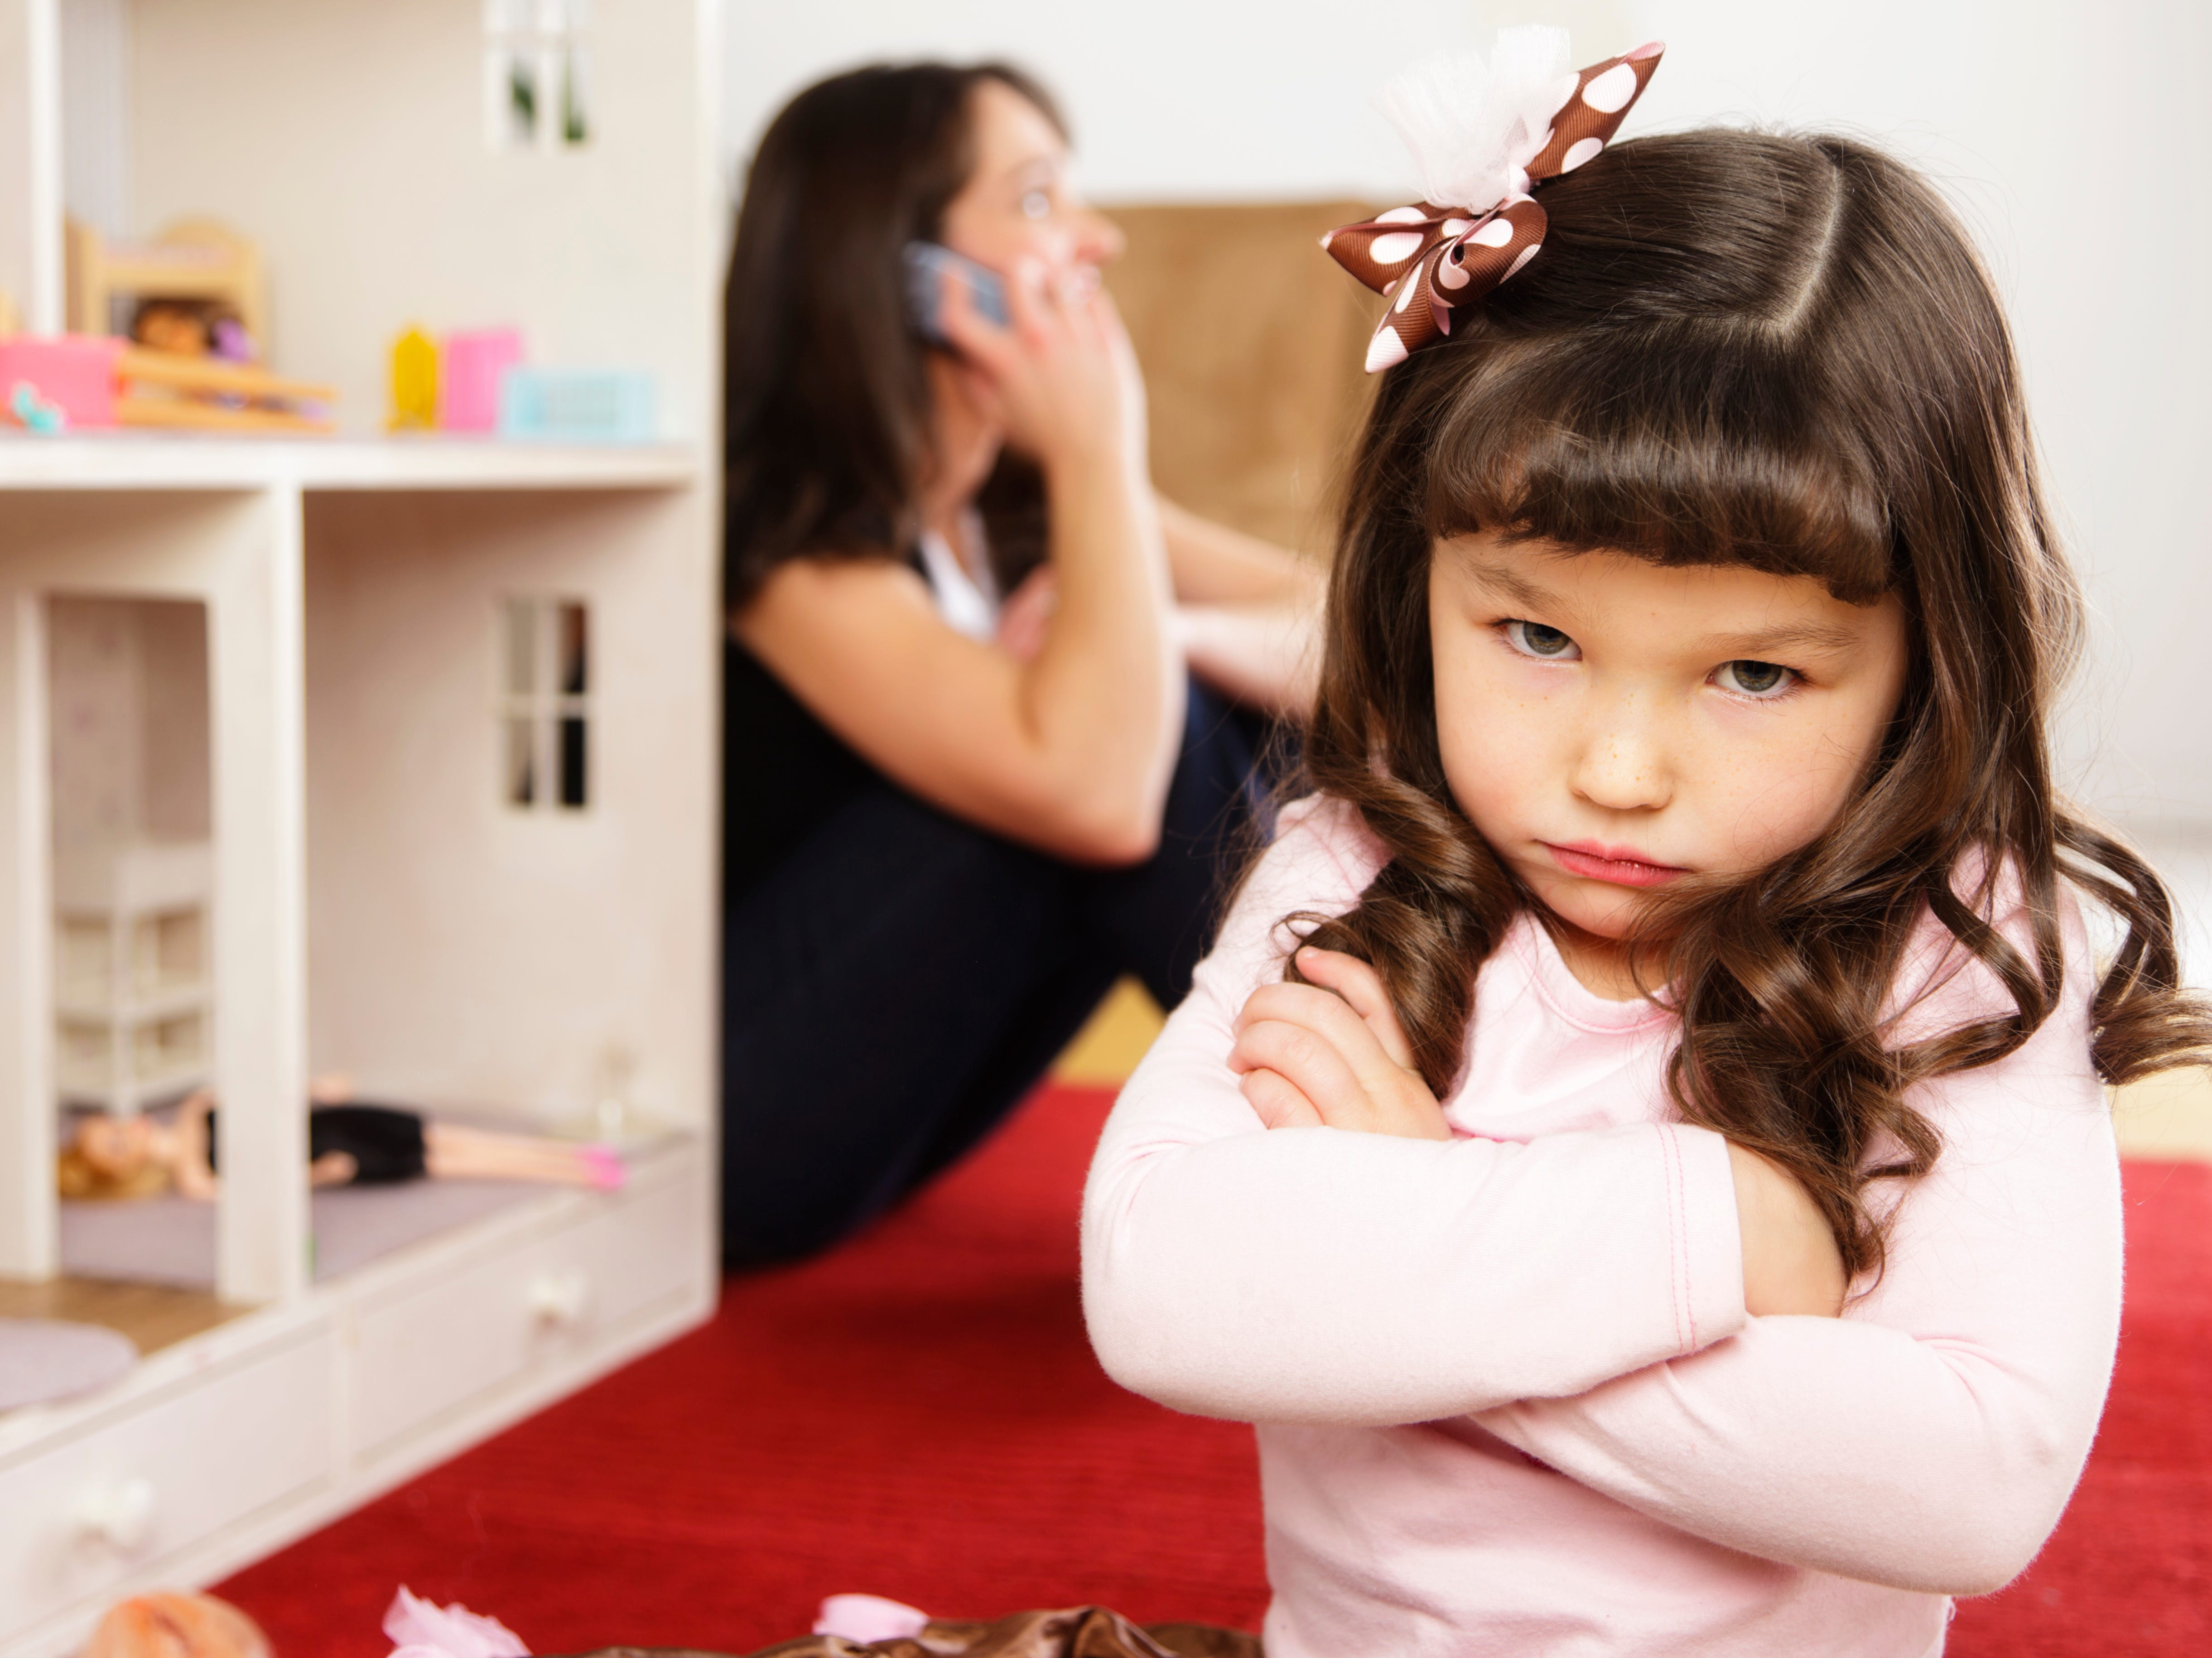 Believe it or not, parents can win the power struggle by giving kids control | Burlington Free Press